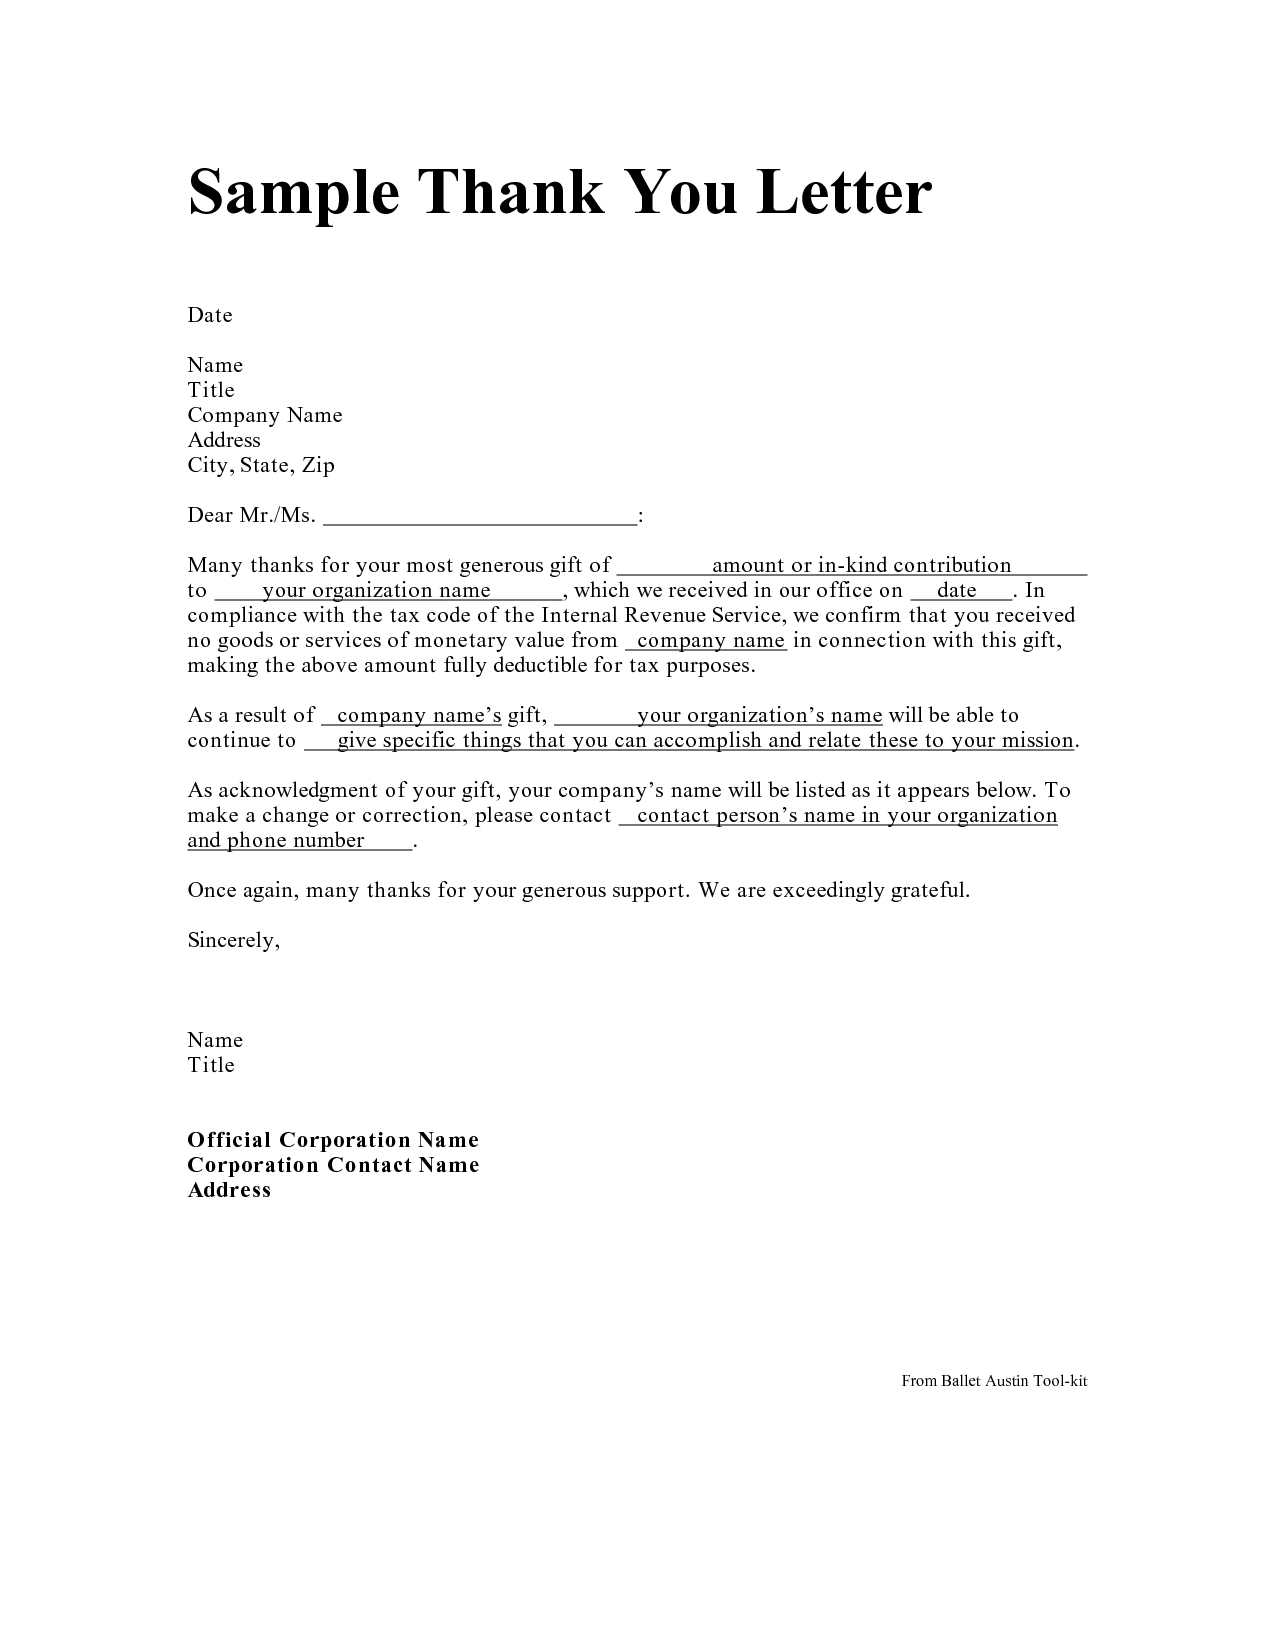 Text Annotation Worksheet as Well as Writing A Thank You Digest